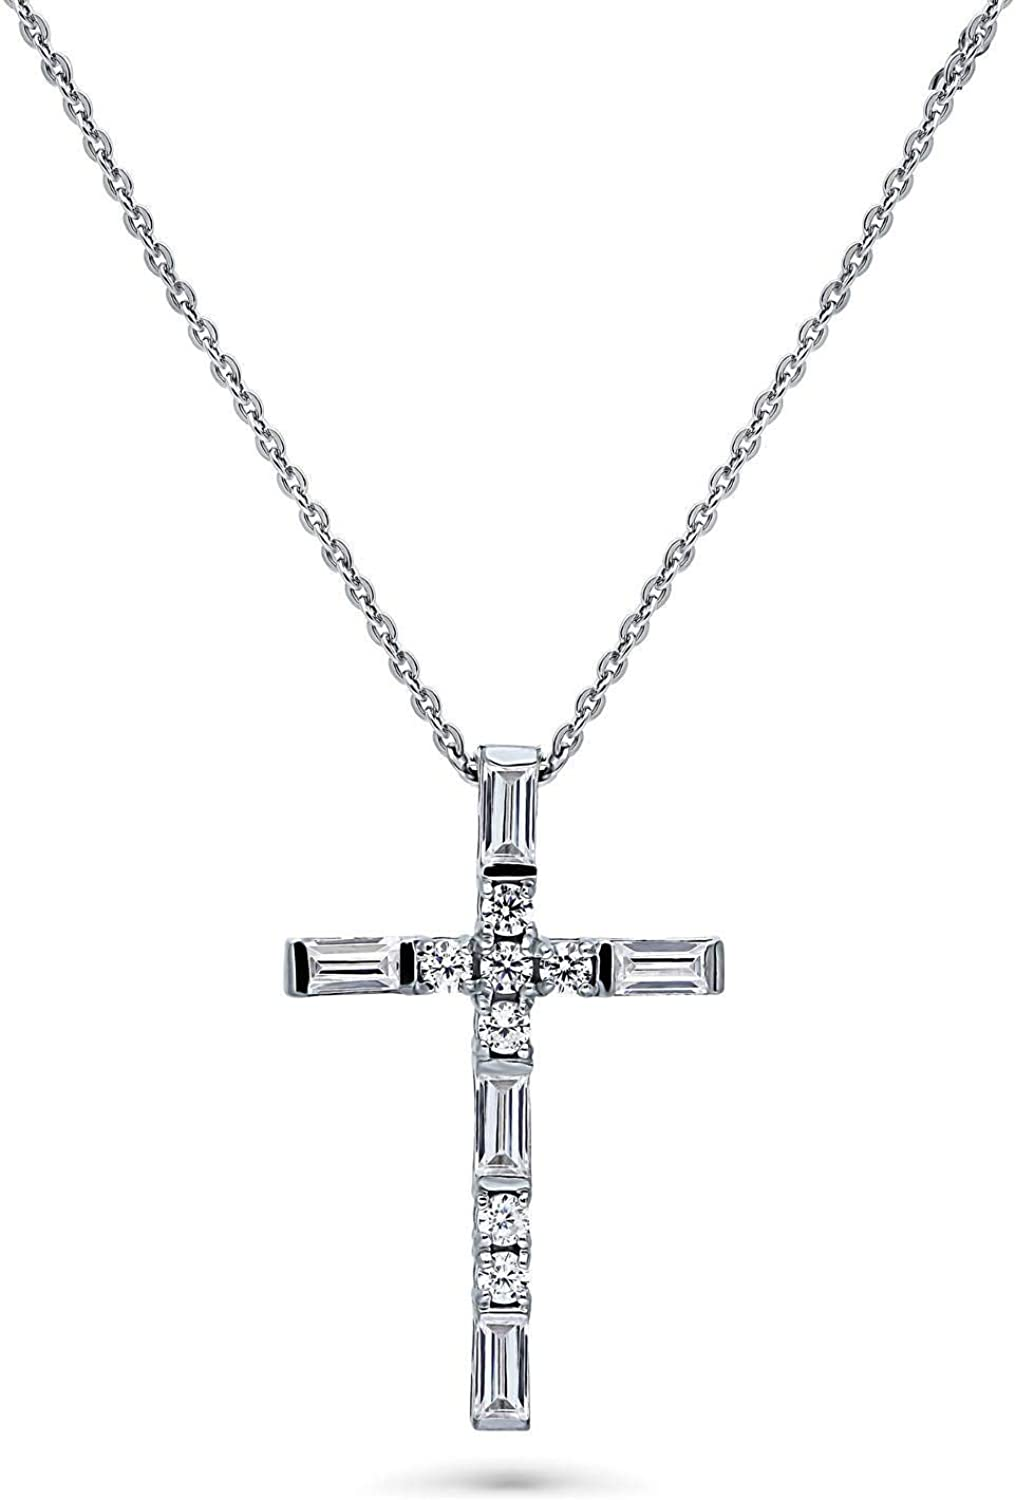 All stores are sold BERRICLE Rhodium Plated Sterling Silver Surprise price Zirconia Cubic CZ Cross